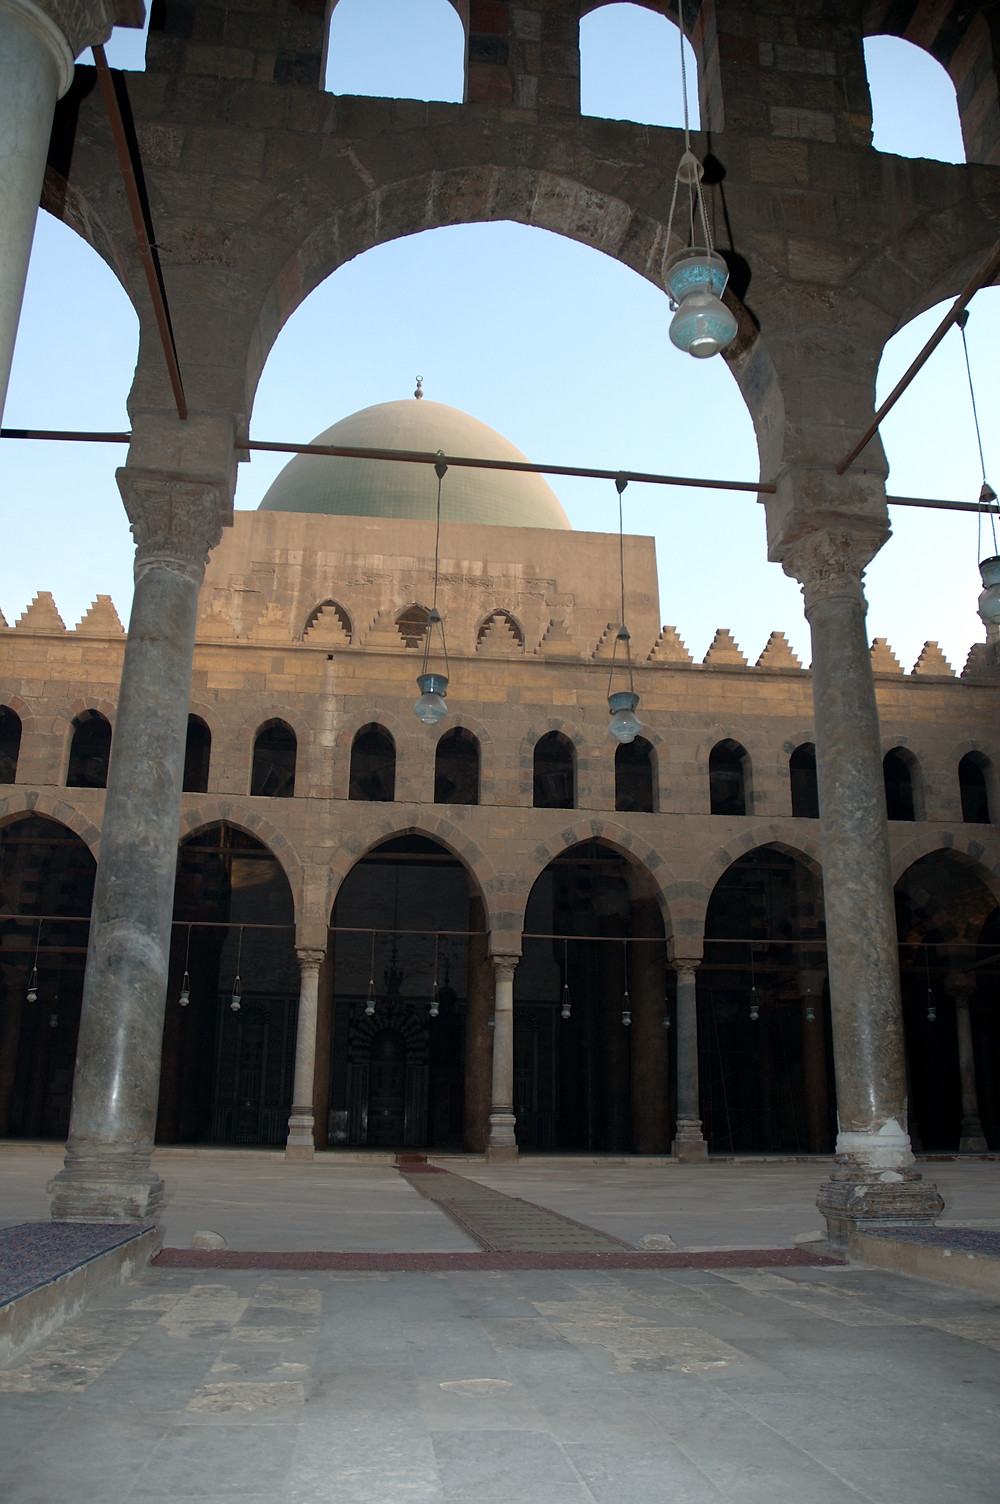 A mosque in morning light through an archway. The mosque has symmetrical arches, minarets and a dome, all in sand coloured stone.